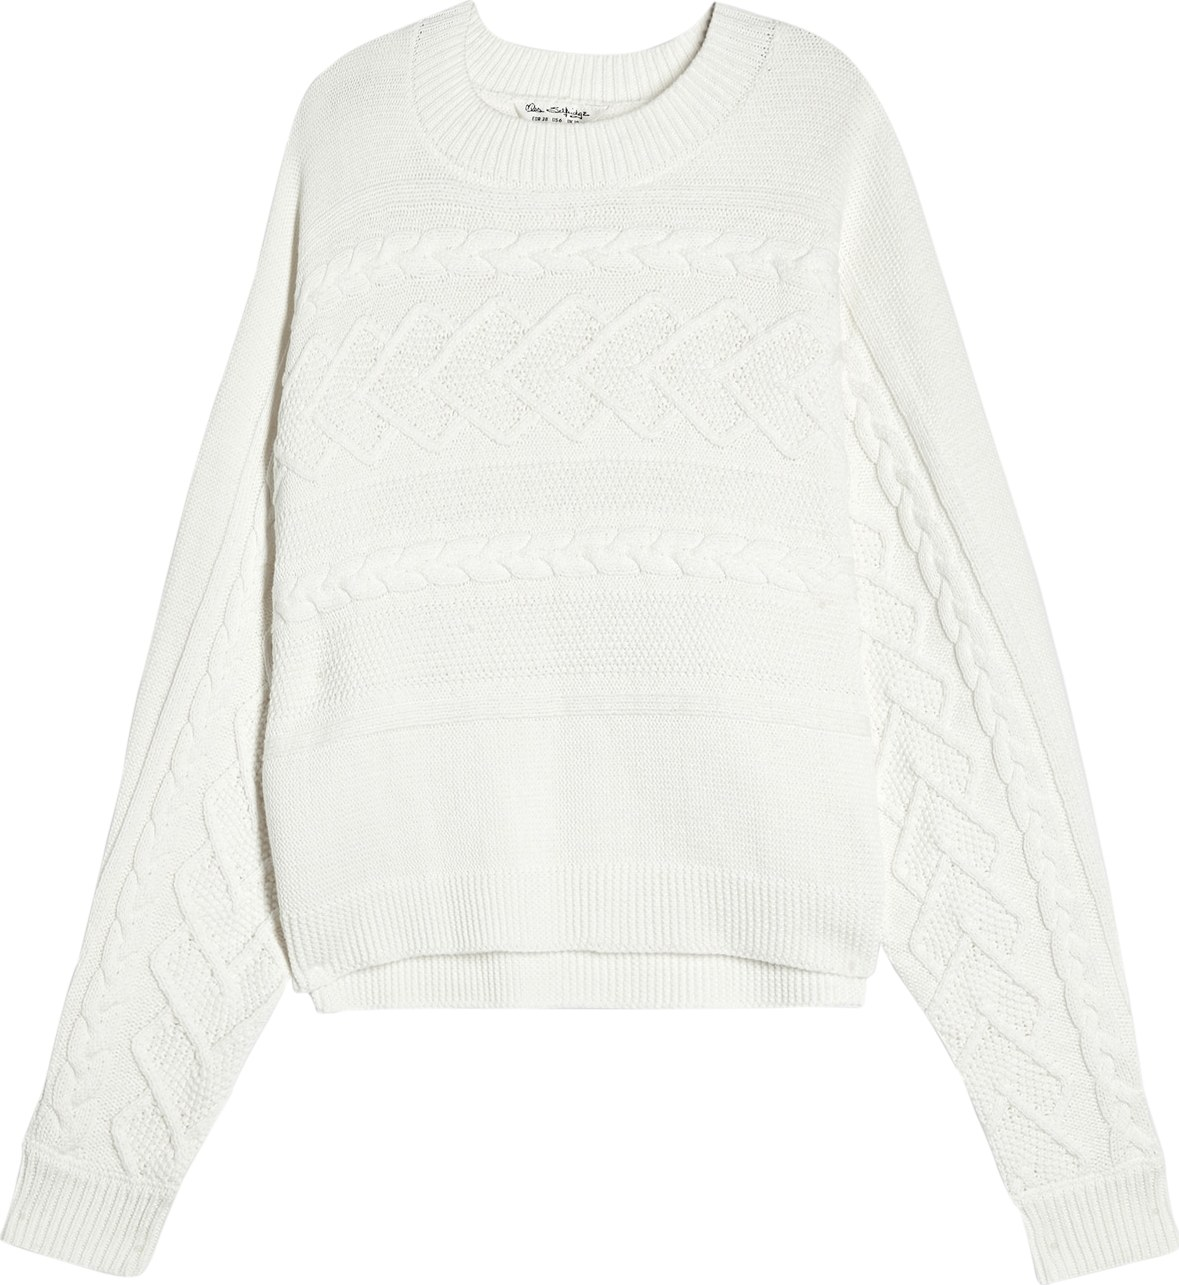 Svetr DT:CABLE BATWING offwhite Miss Selfridge